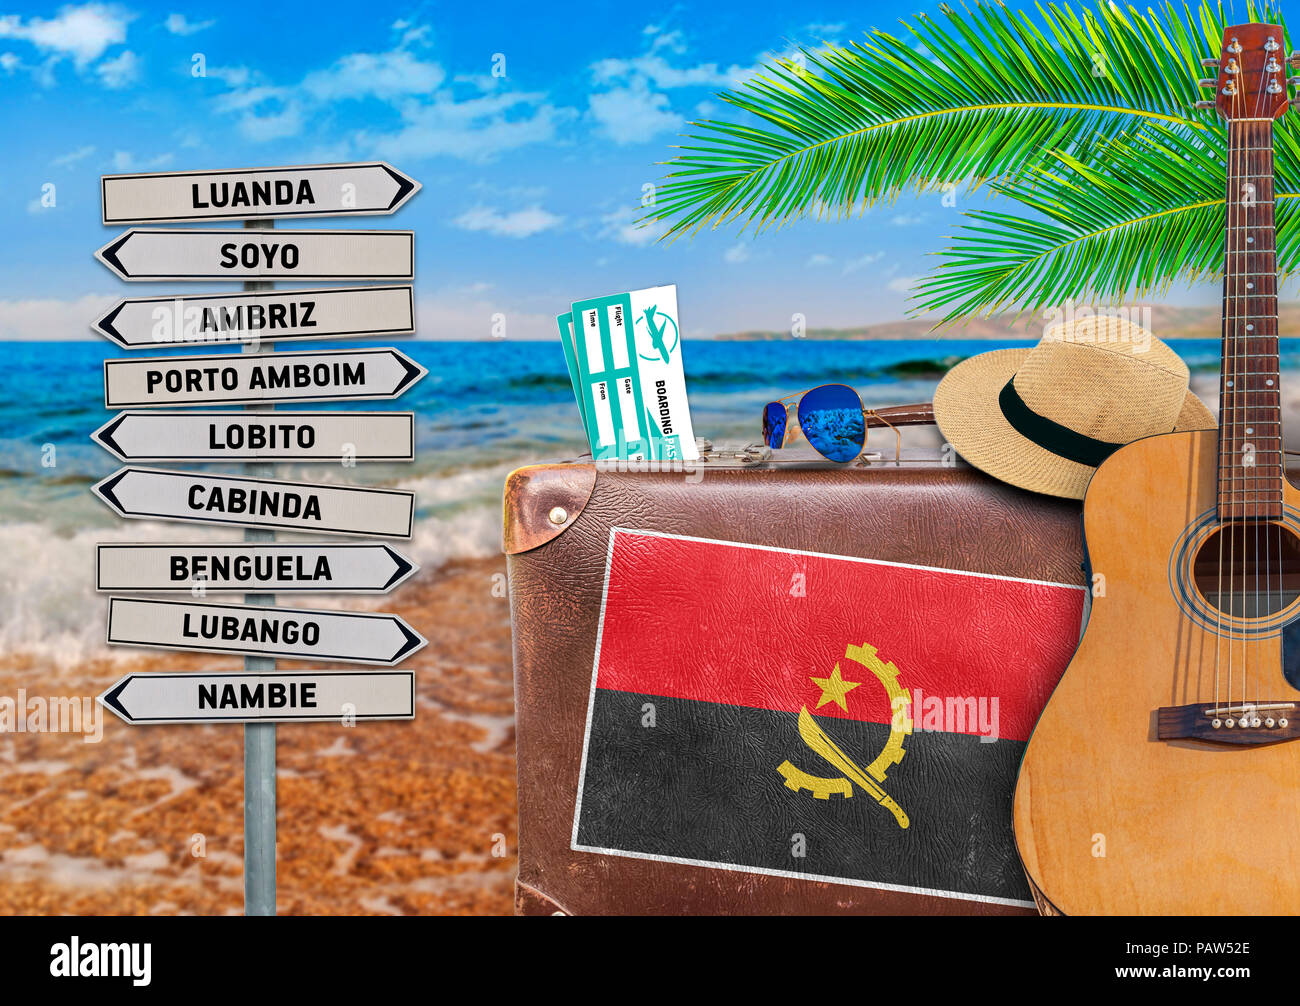 Concept of summer traveling with old suitcase and Angola town sign - Stock Image